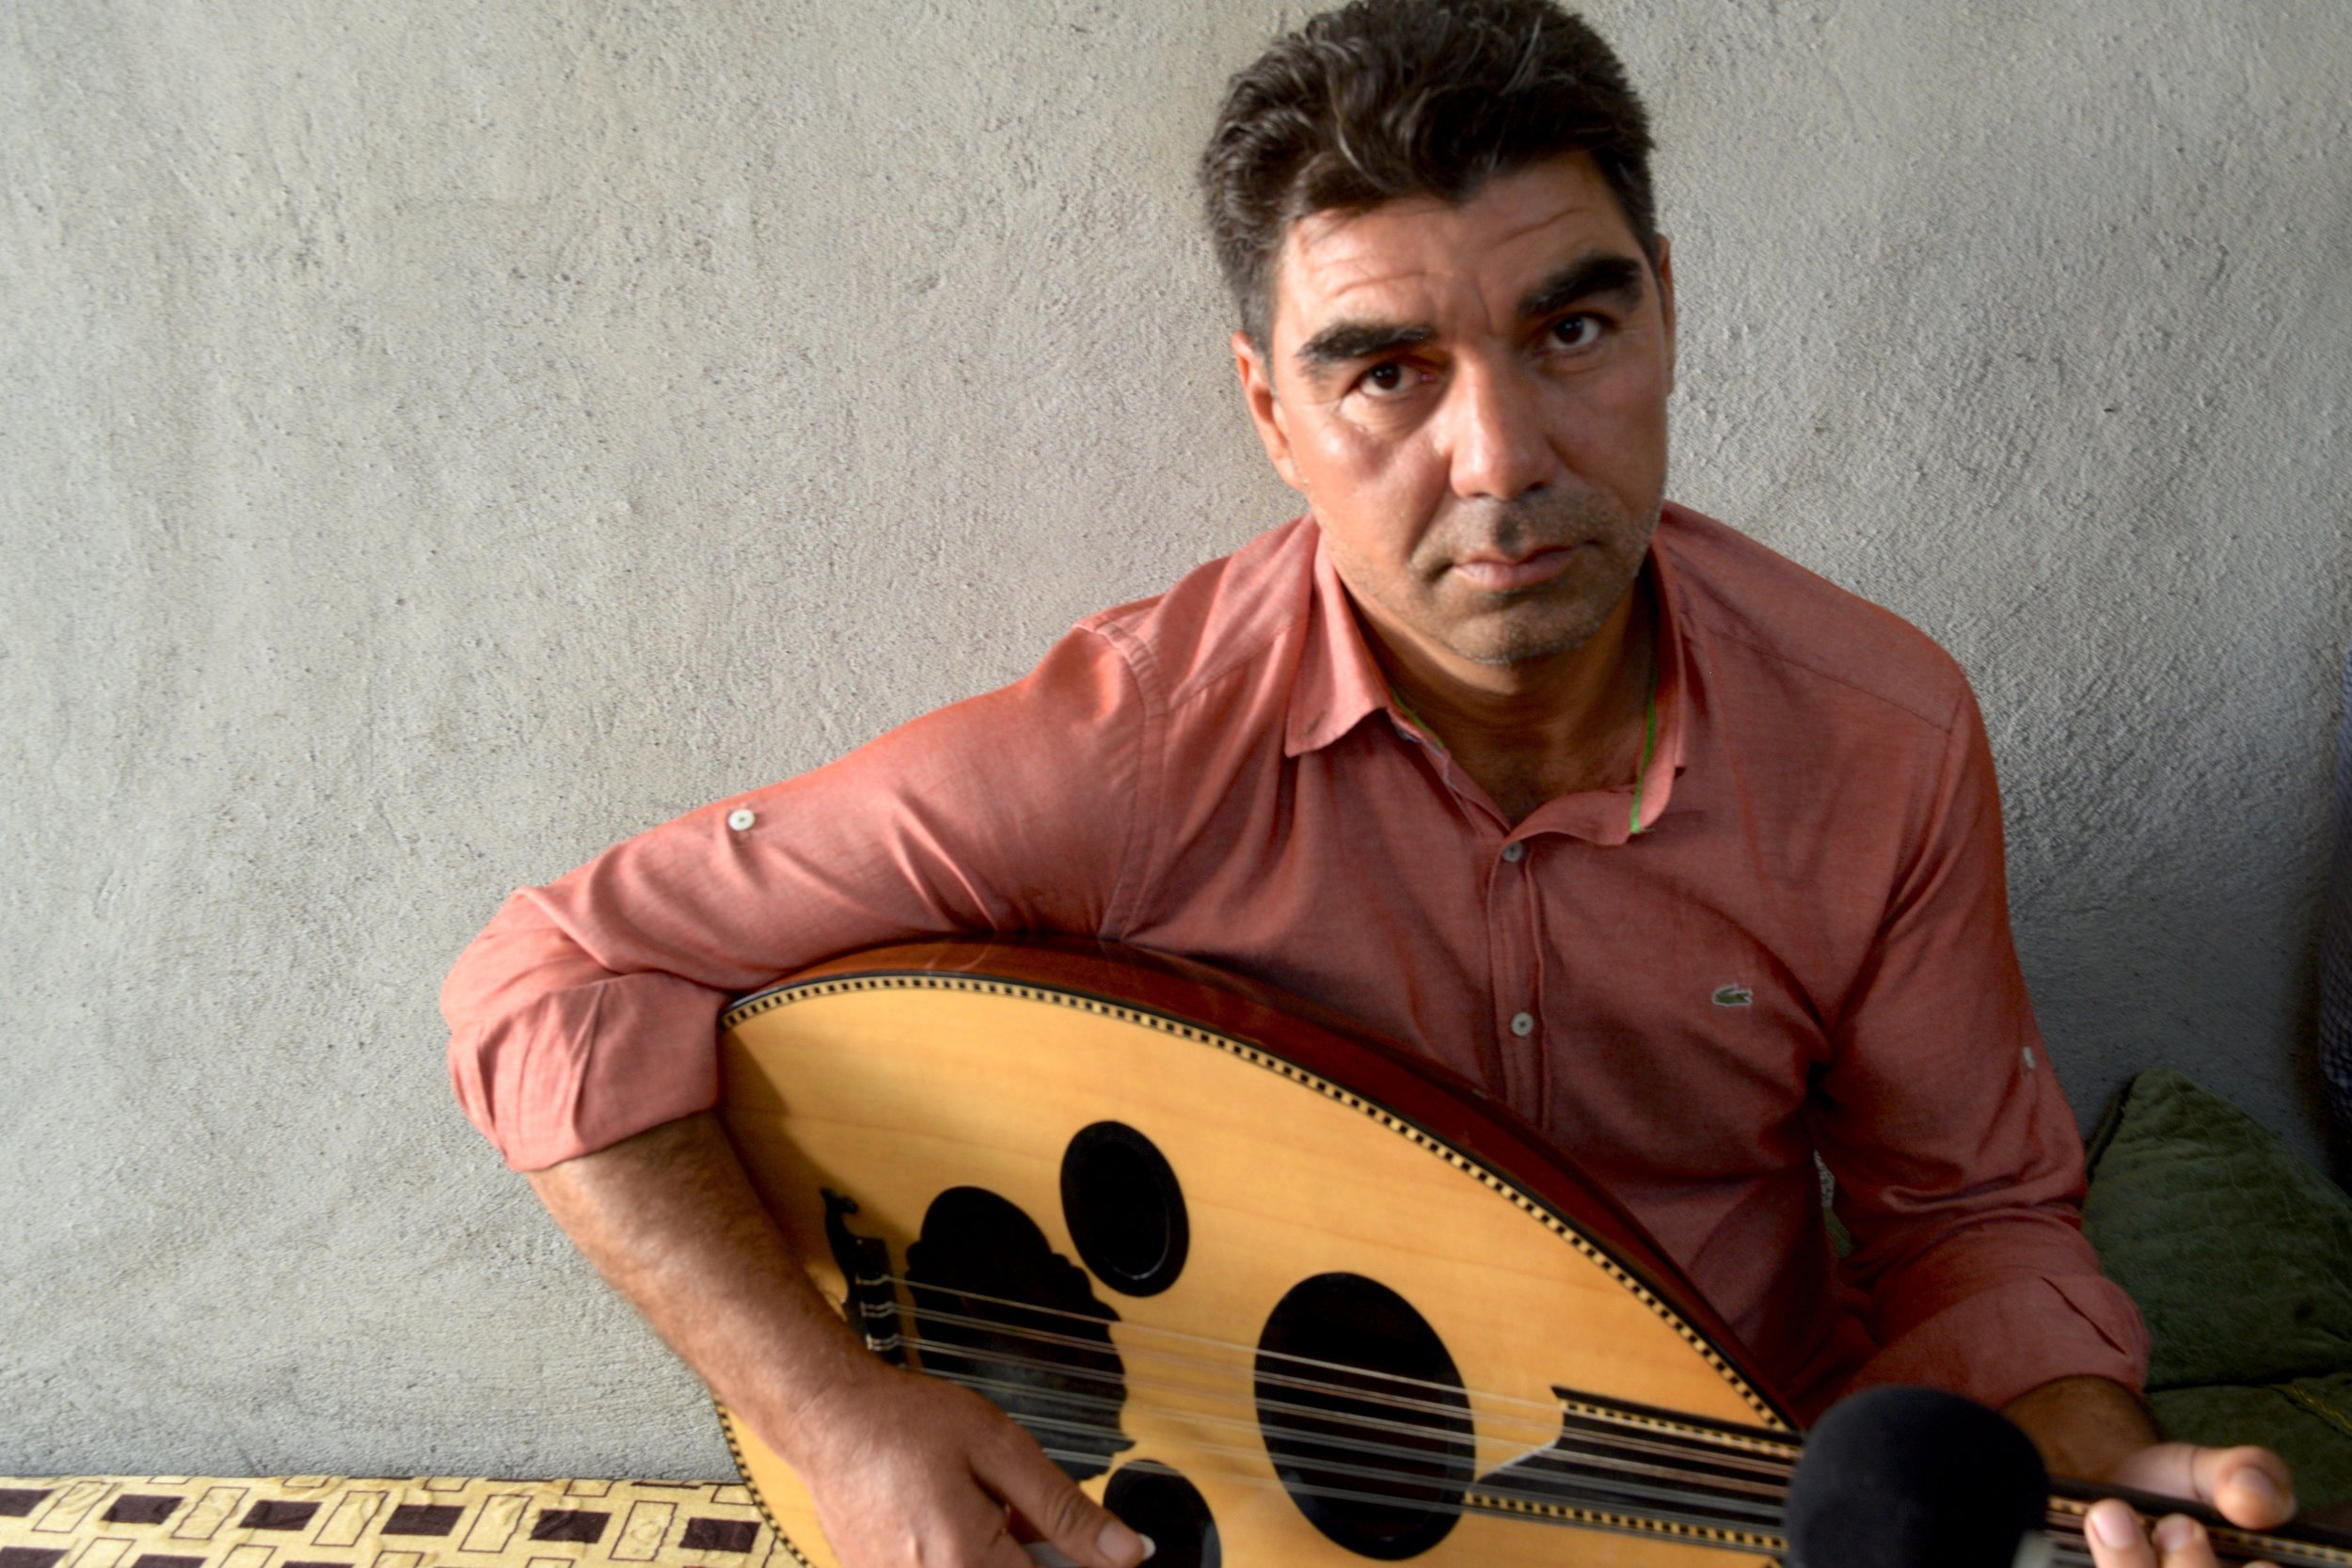 Ali is a Syrian musician now living in Iraq. To learn more about his story, go to musicinexile.org